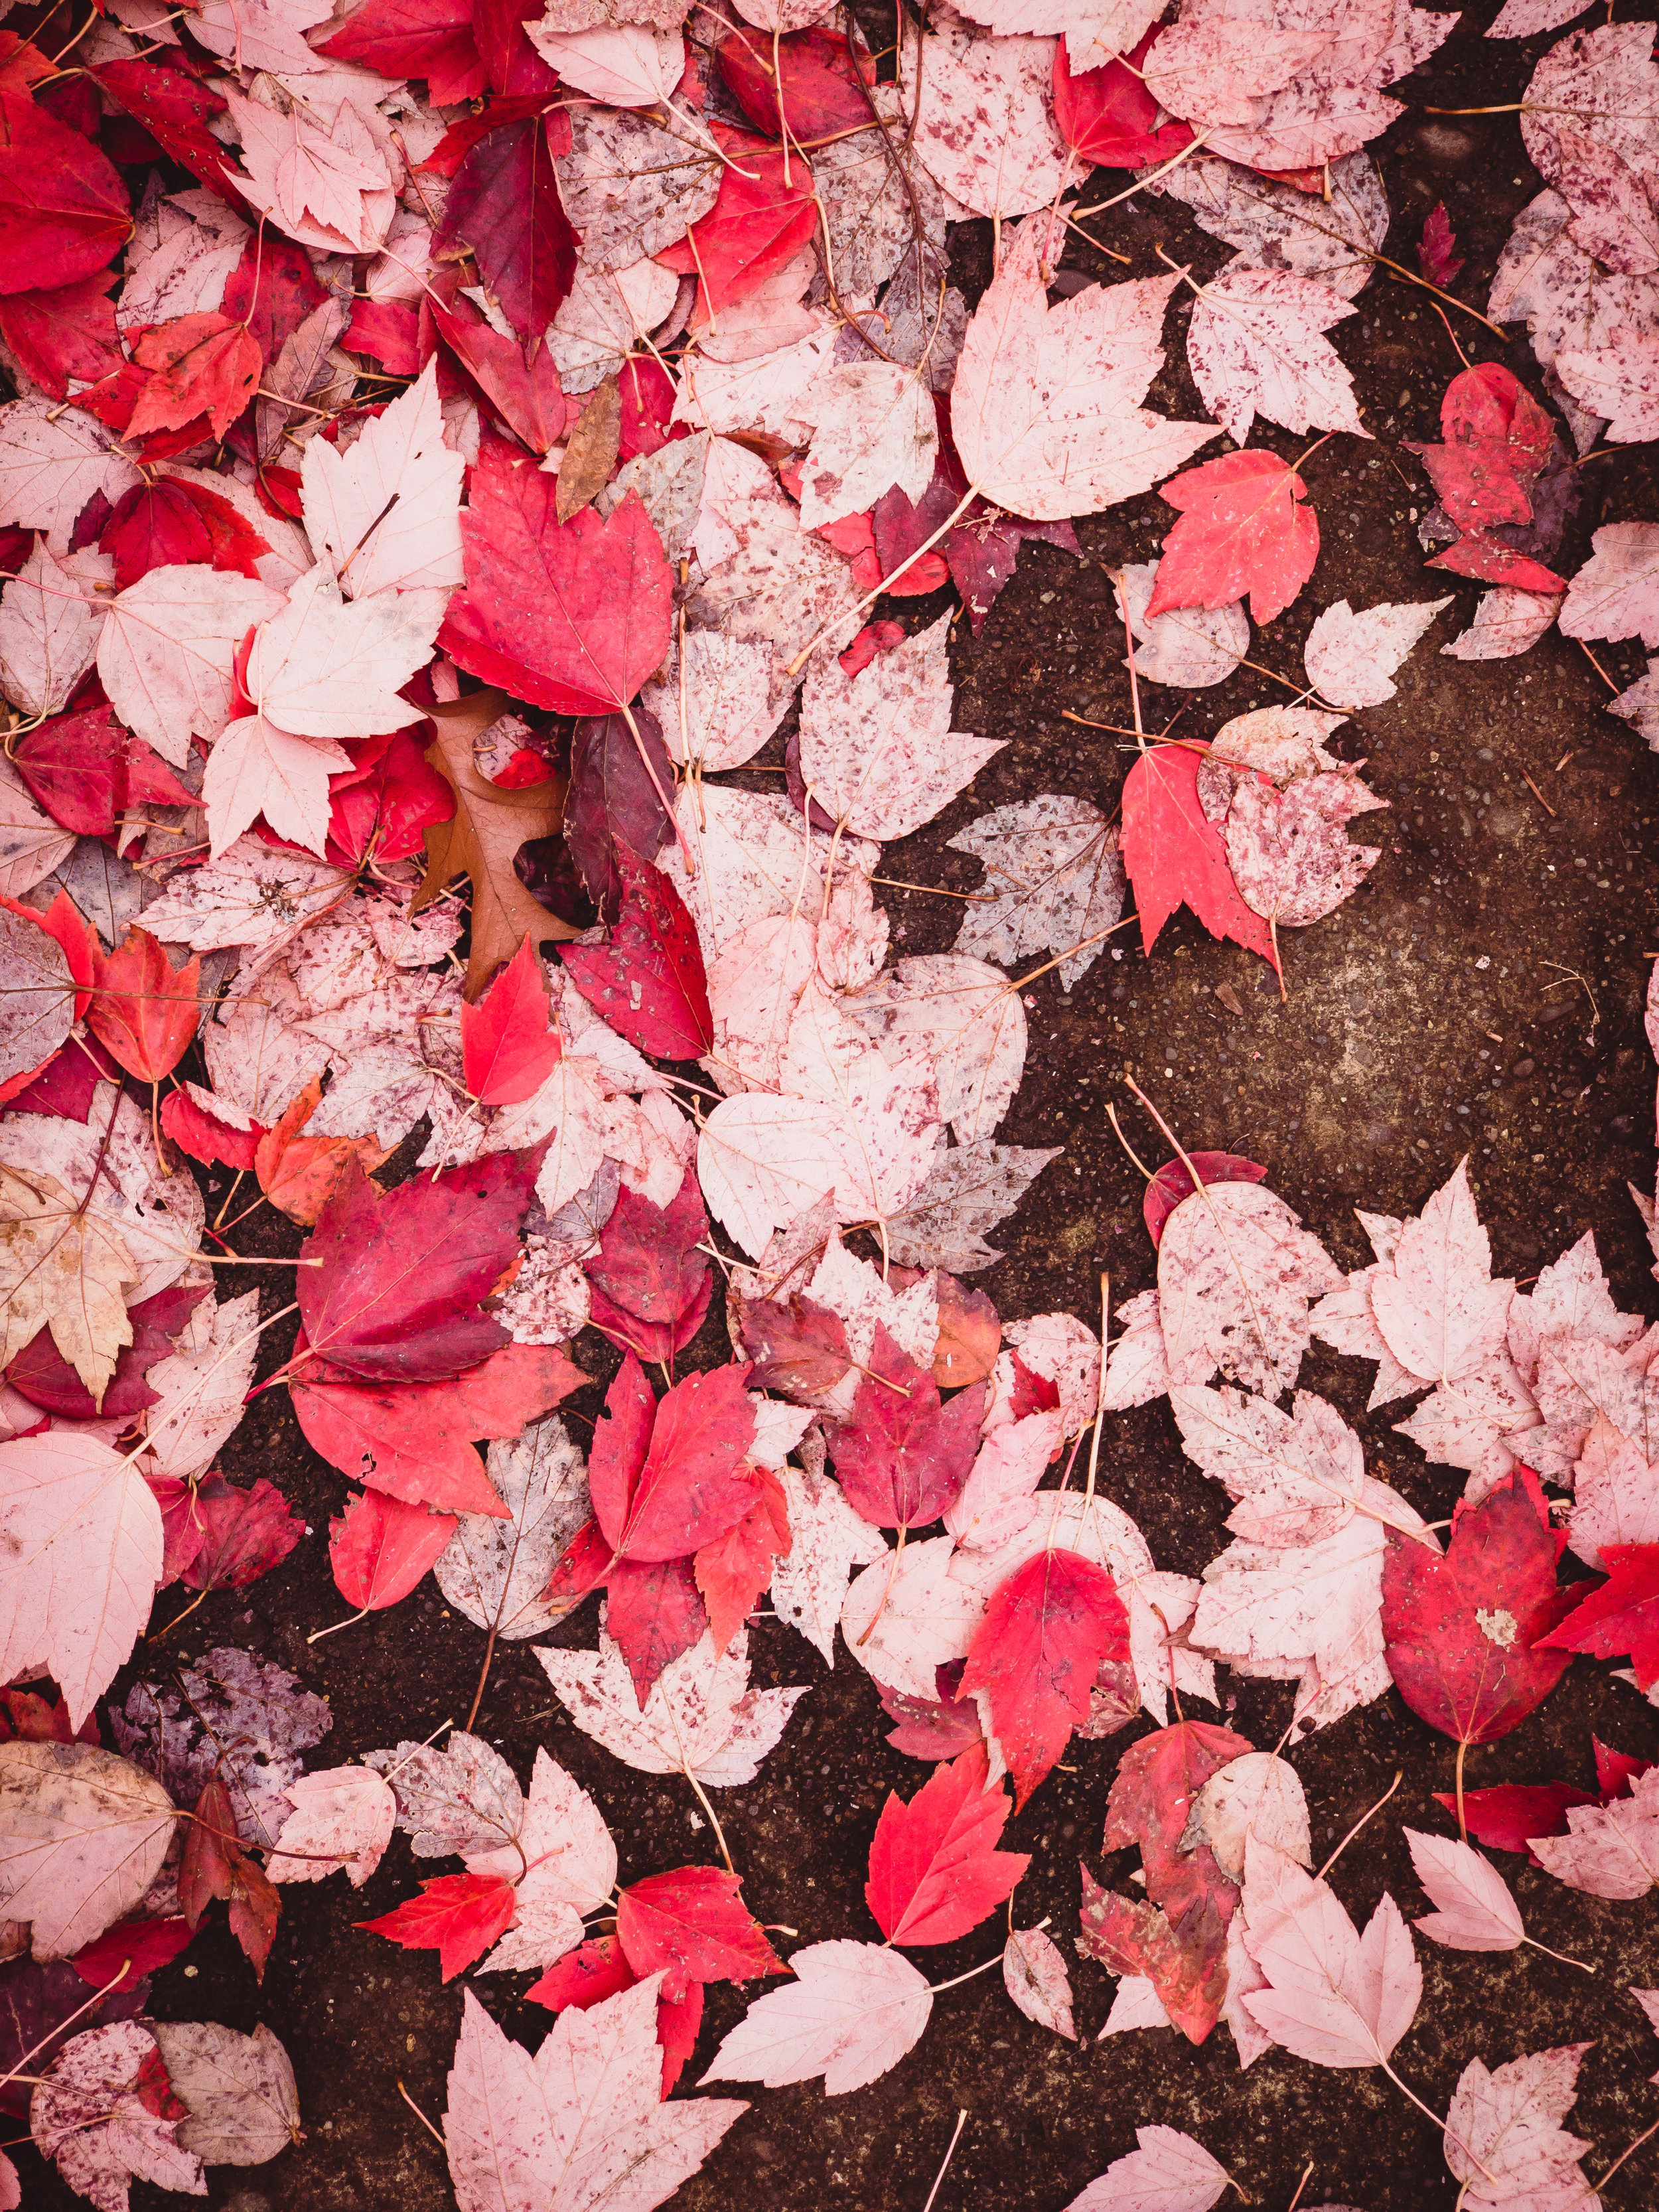 Fallen Leaves in Salem - The colors of the Pacific Northwest as the year wraps up always make me want to pause and take a calm moment to relax.